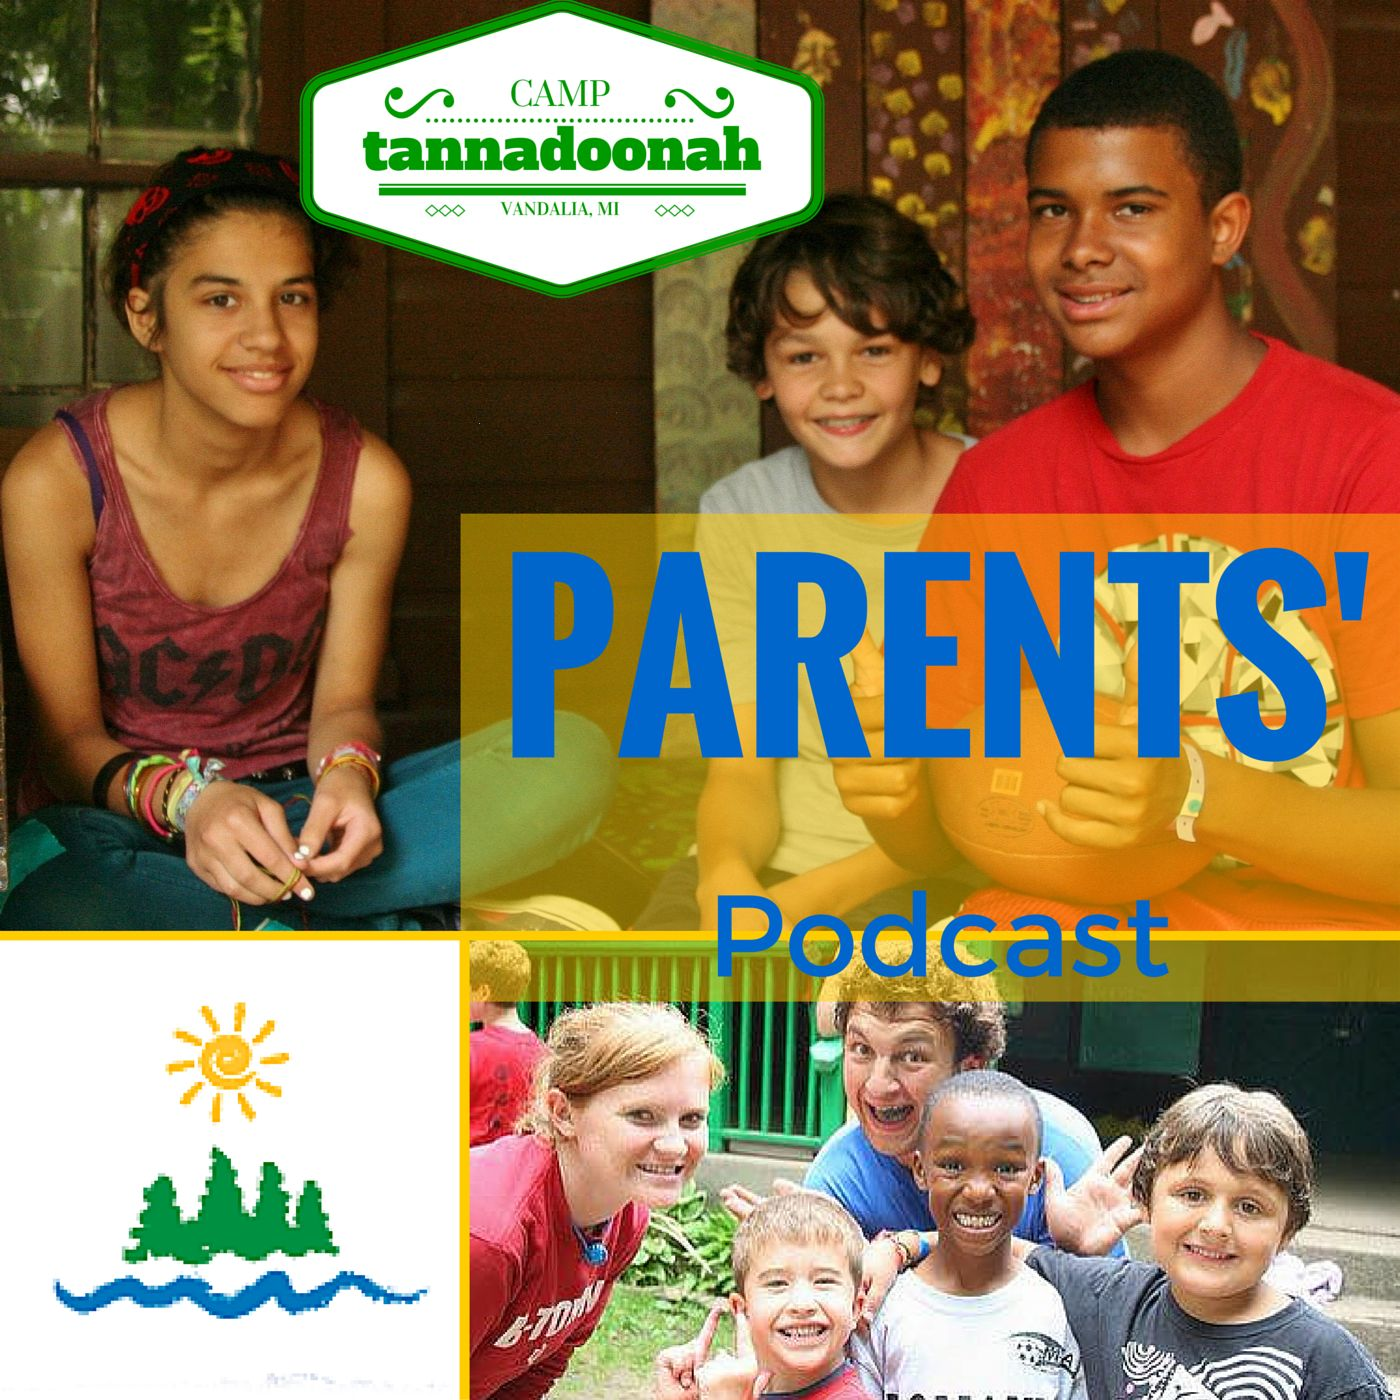 Camp Tannadoonah Parents' Podcast